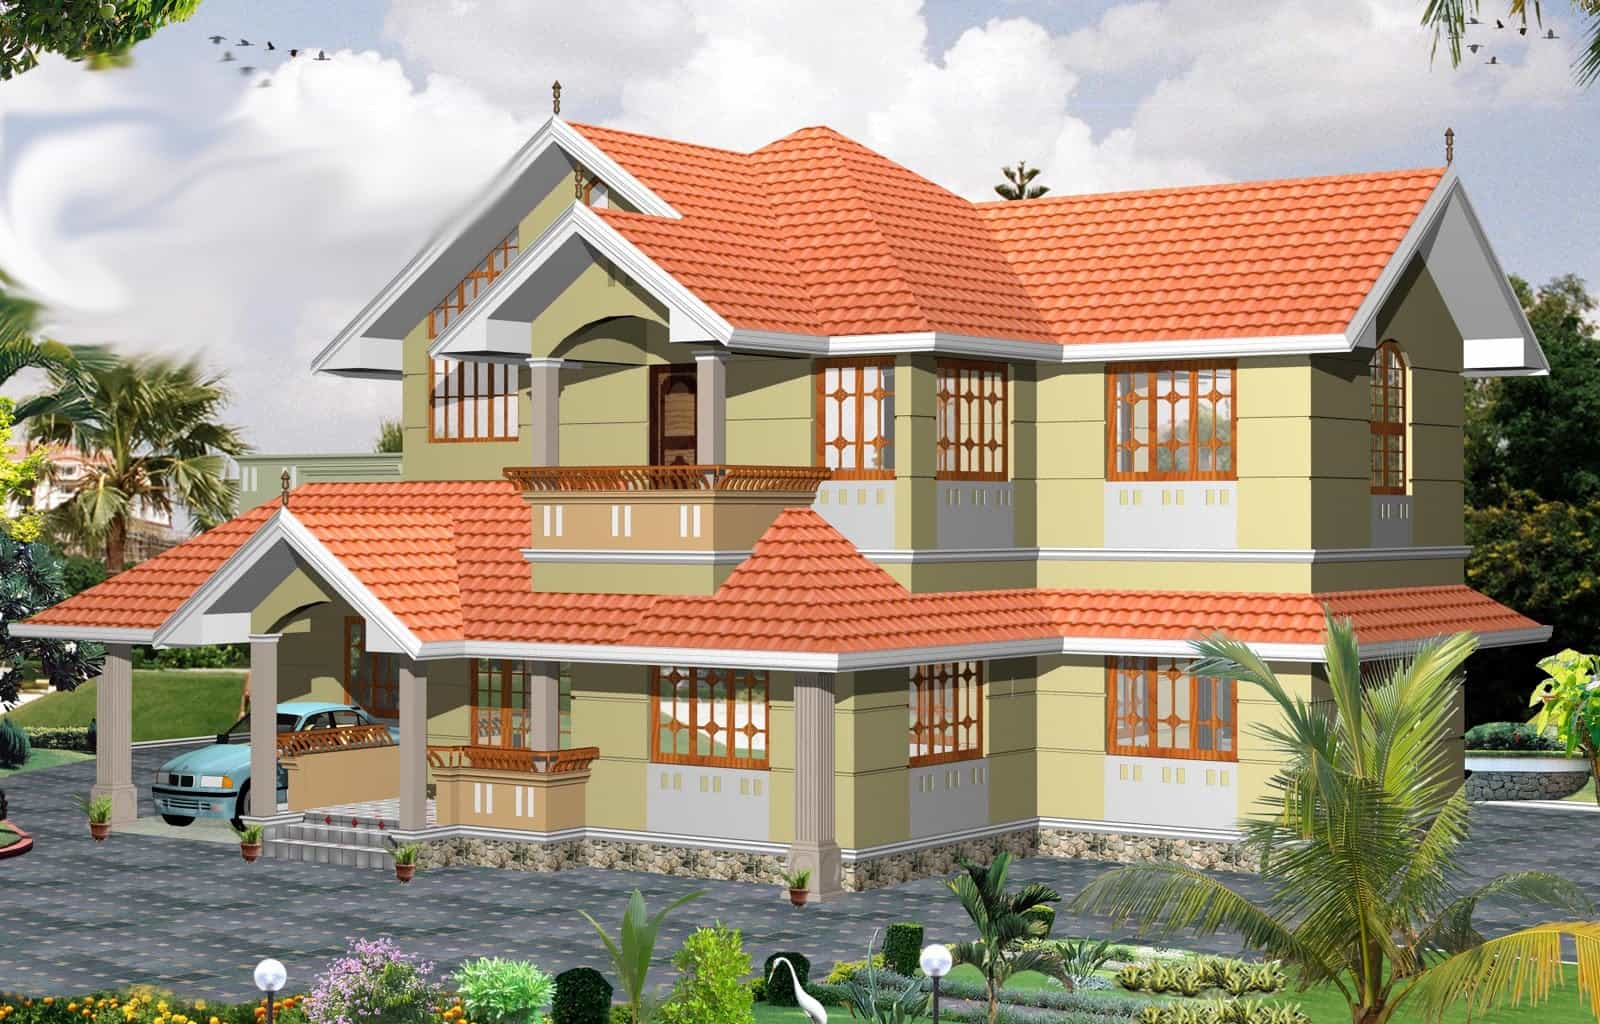 2055 sqft 3BHK House Plan Kerala Home floor plans with photo elevation1 - 43+ Modern Kerala Style House Plans With Photos Background